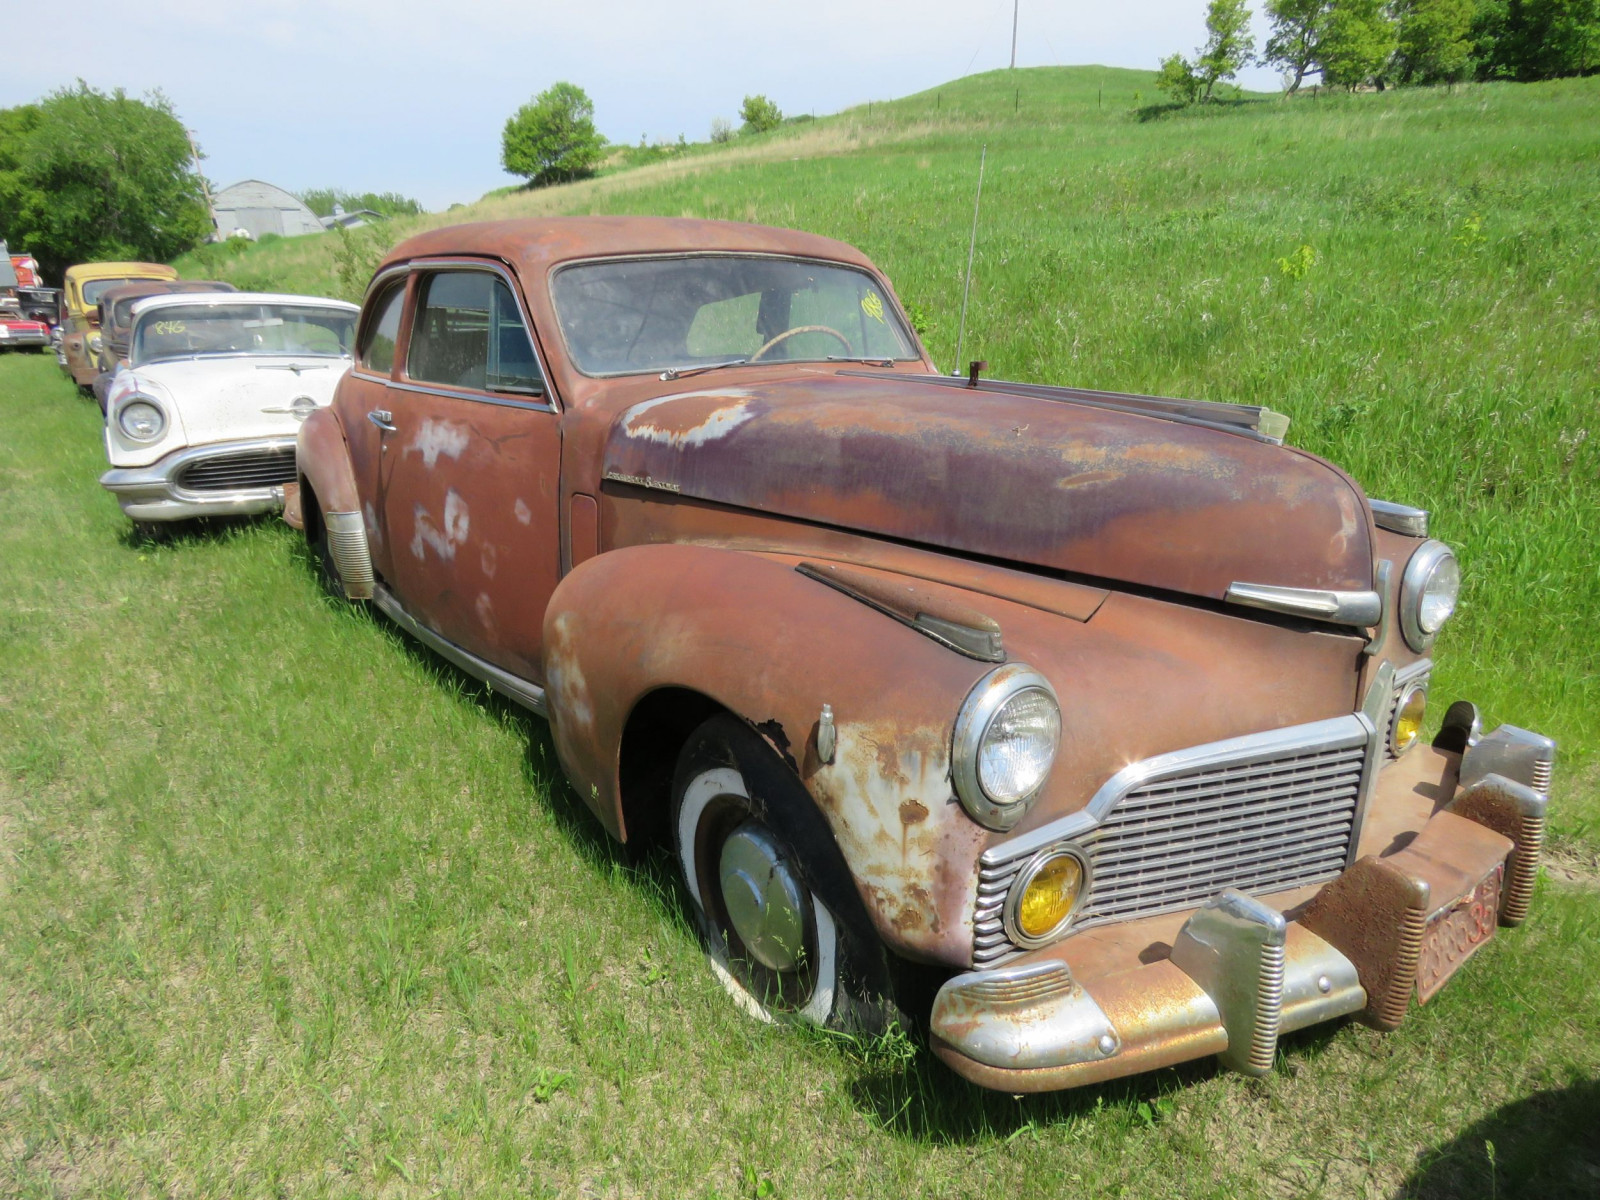 1942 Studebaker President Skyway Coupe 7147049 - Image 3